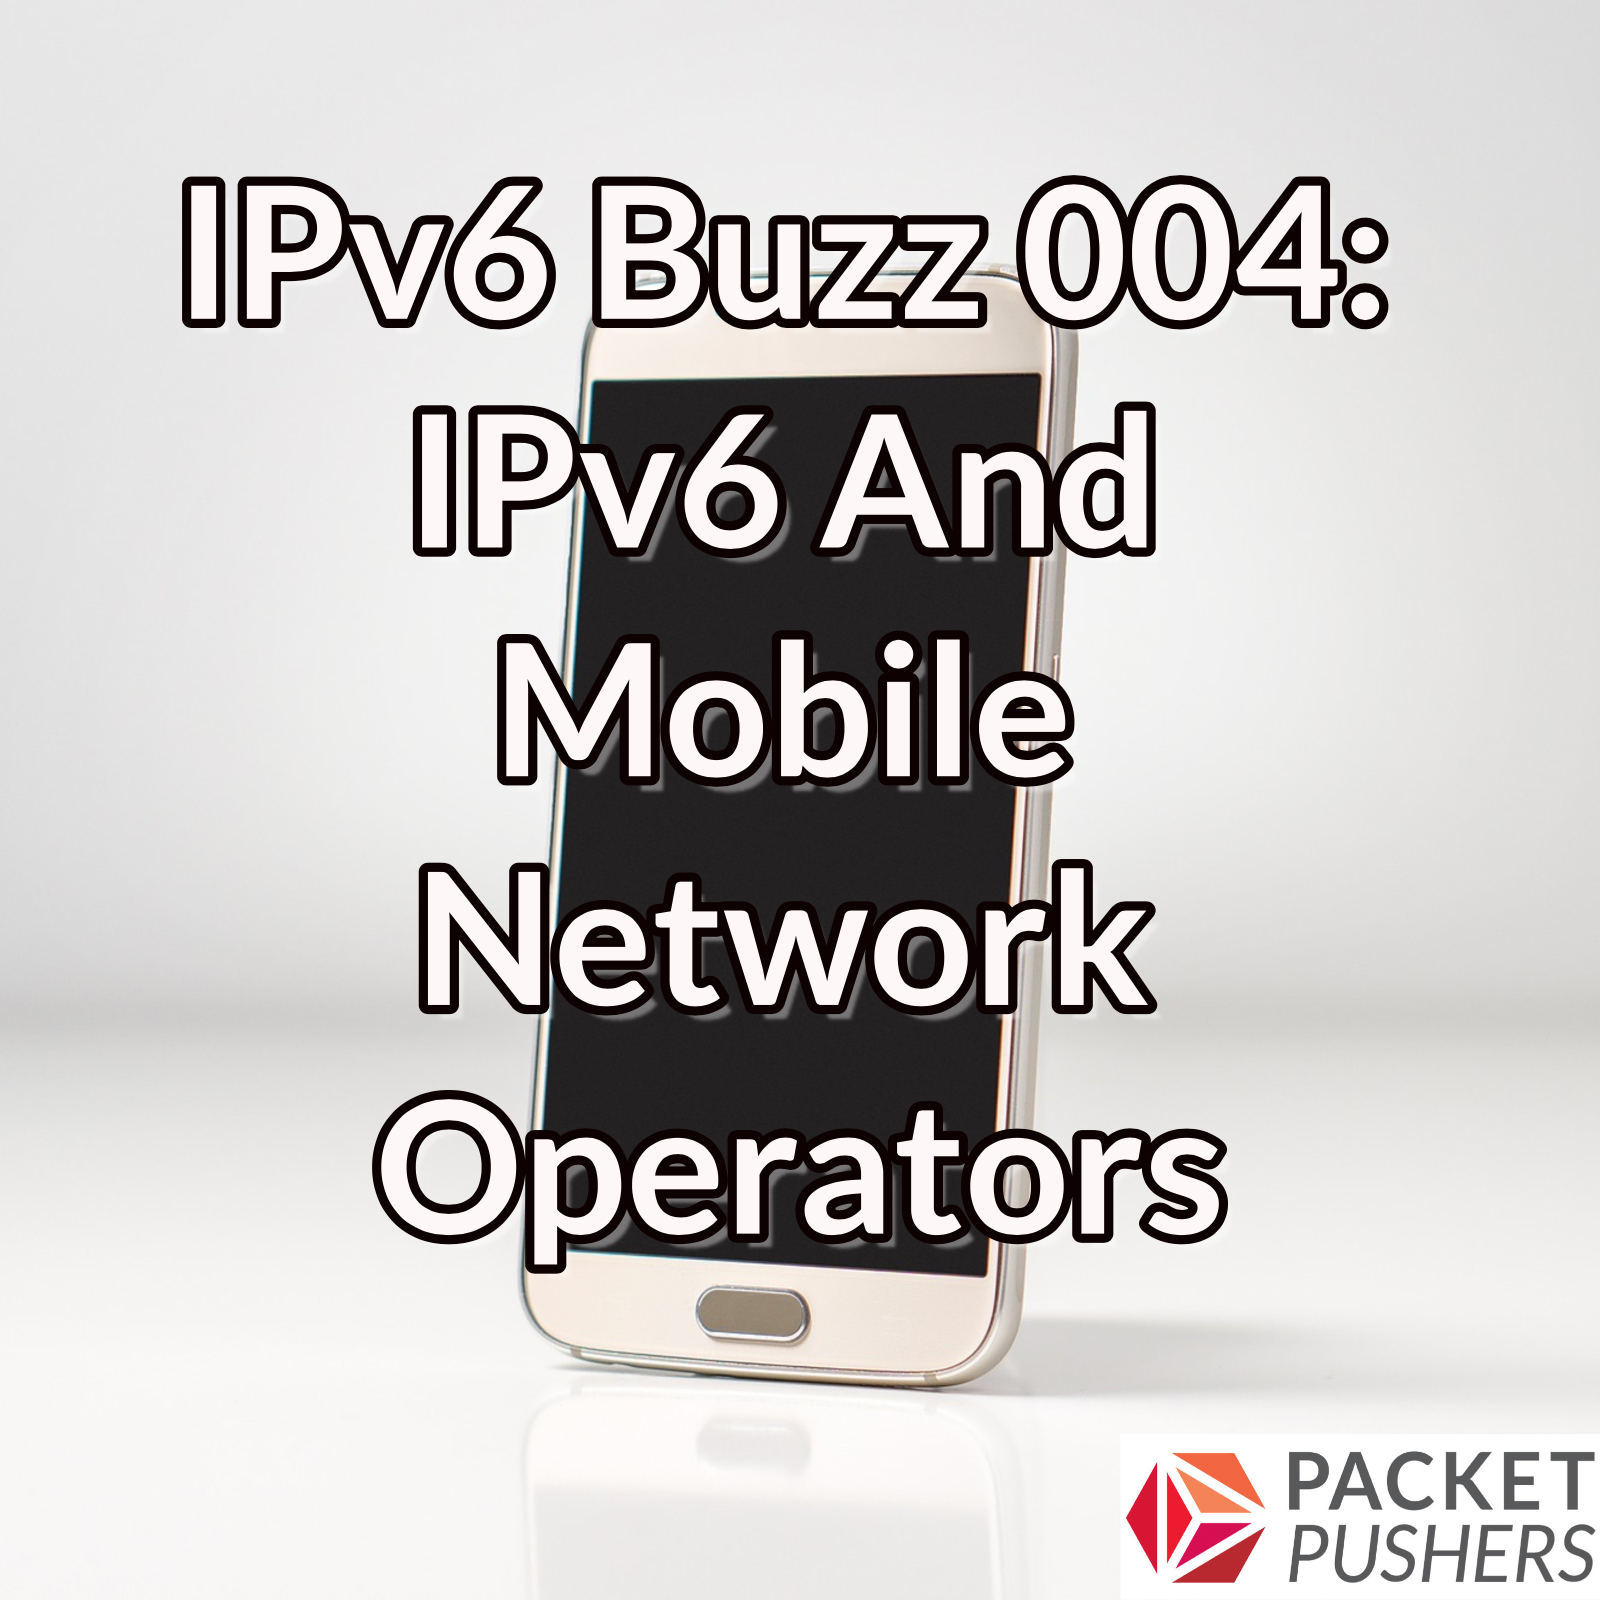 IPv6 and Mobile Network Operators